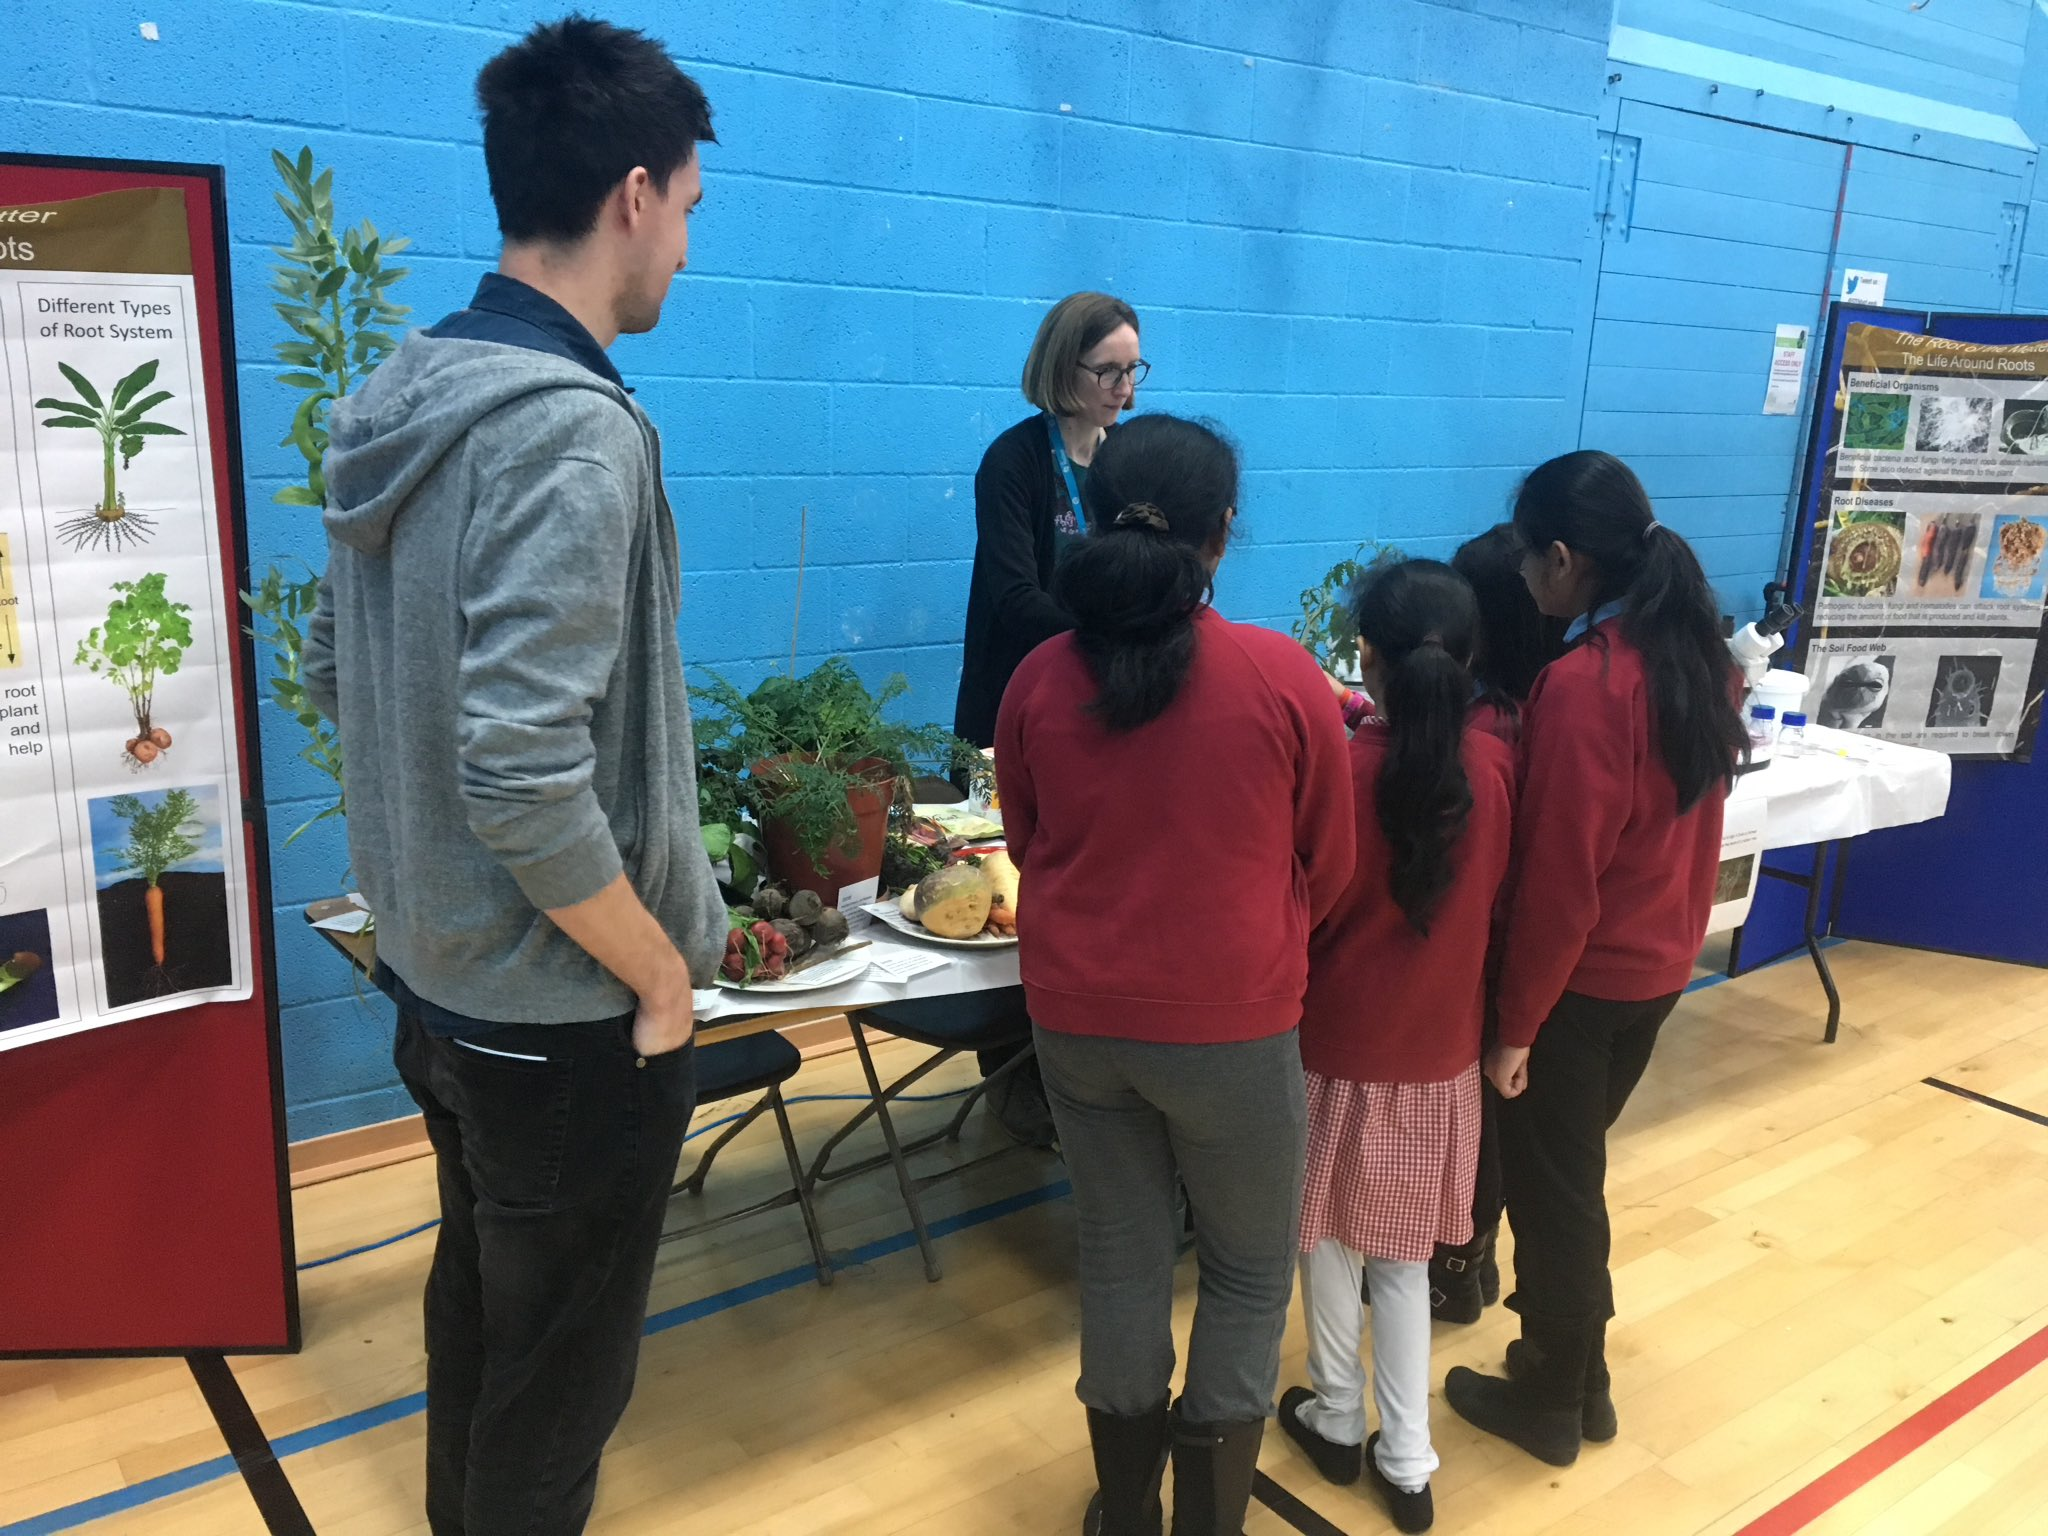 @STEMatLeeds First session at Discovery Zone talking about why roots are important. Cassava crisps are going down well! #LFoS17 https://t.co/VXThaDfJa1